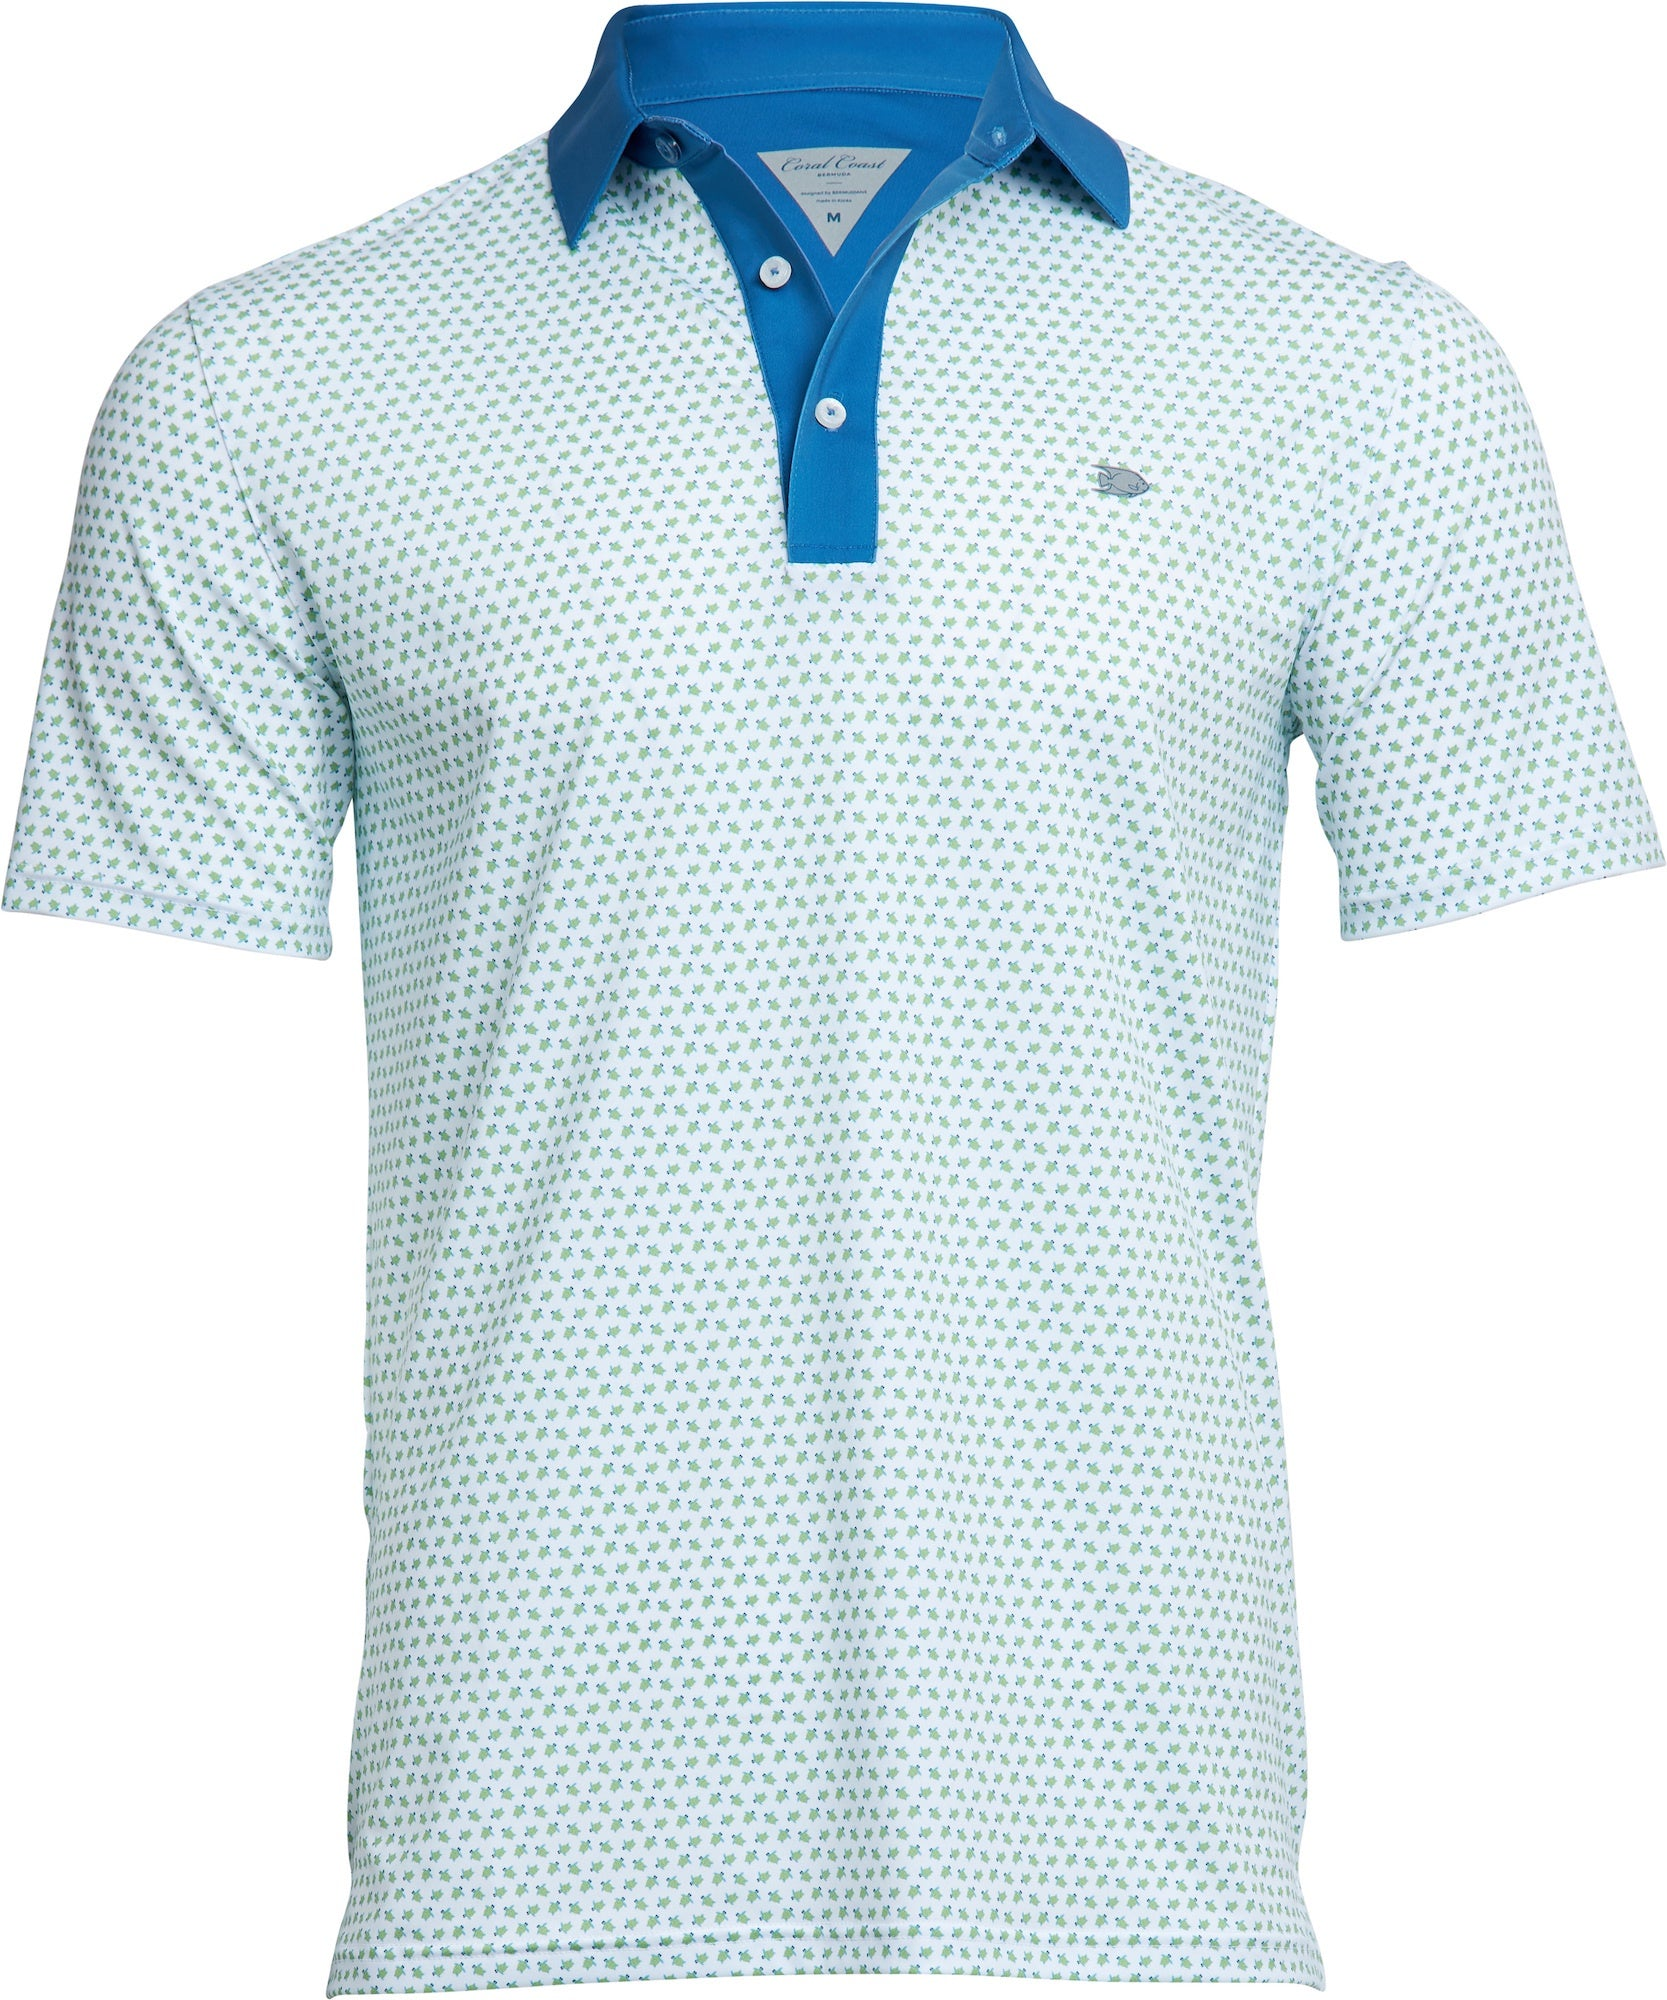 Turtle Performance Golf Polo